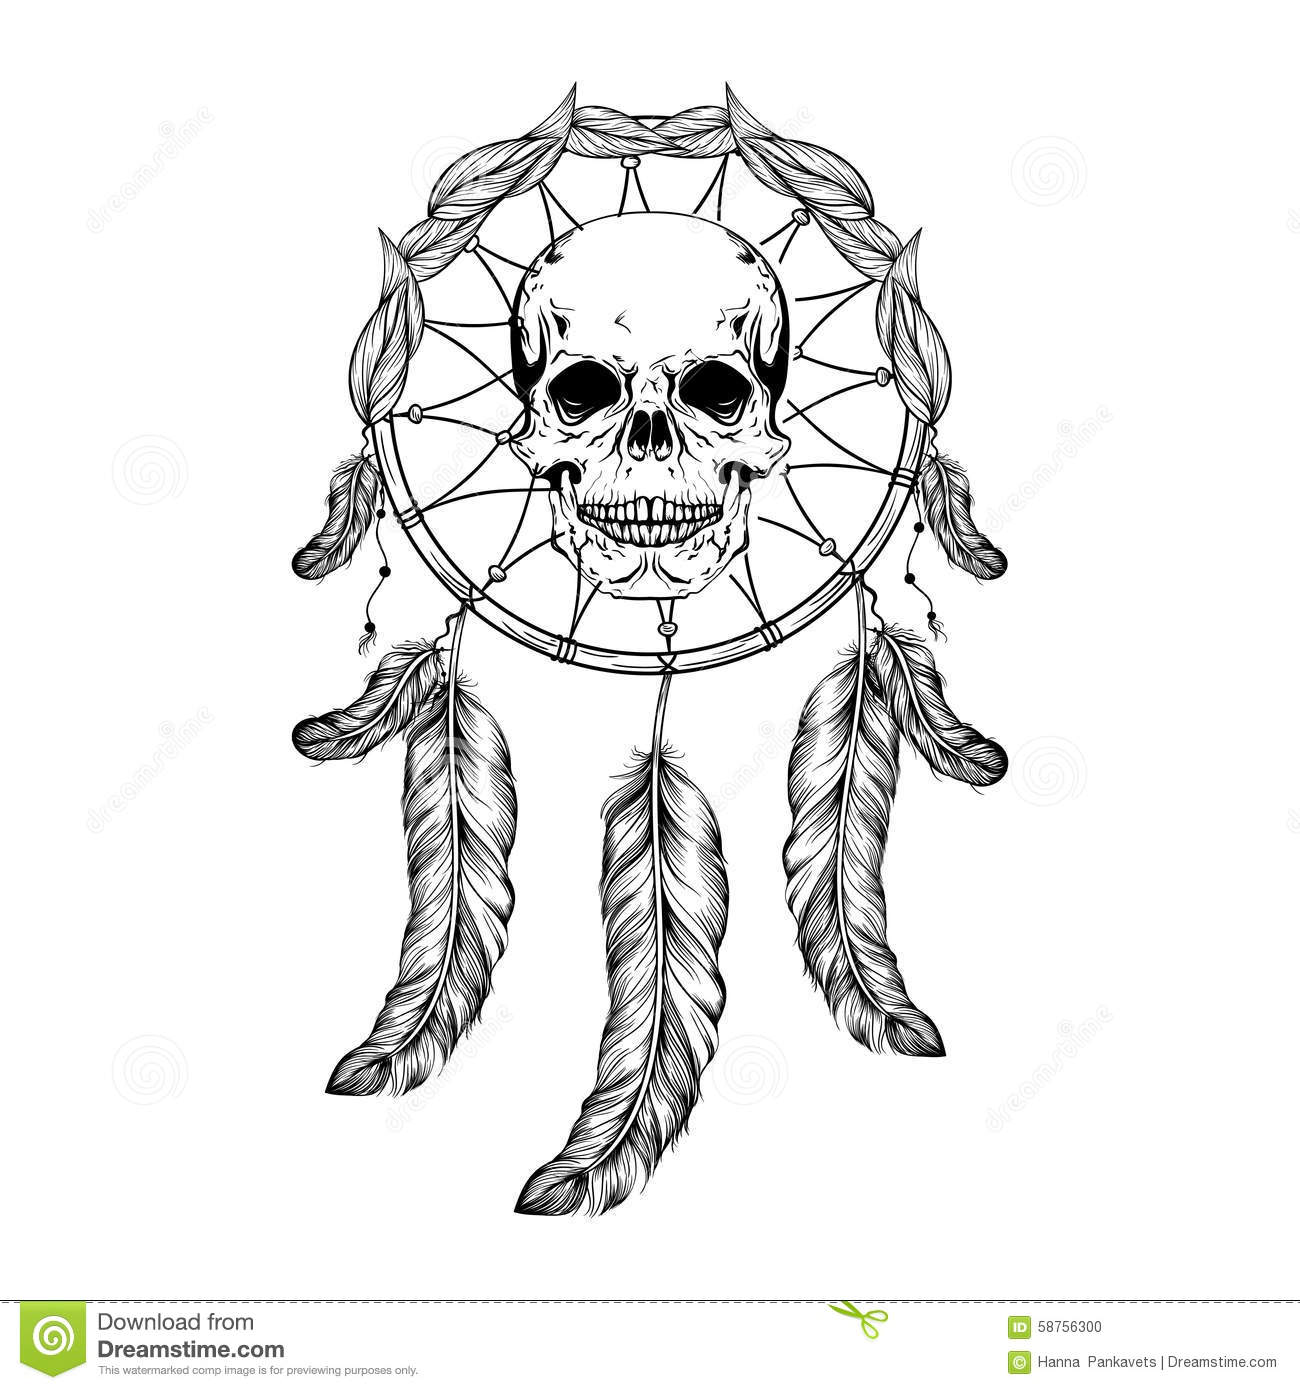 Dream Catcher With Feathers And Leafs Skull In Center